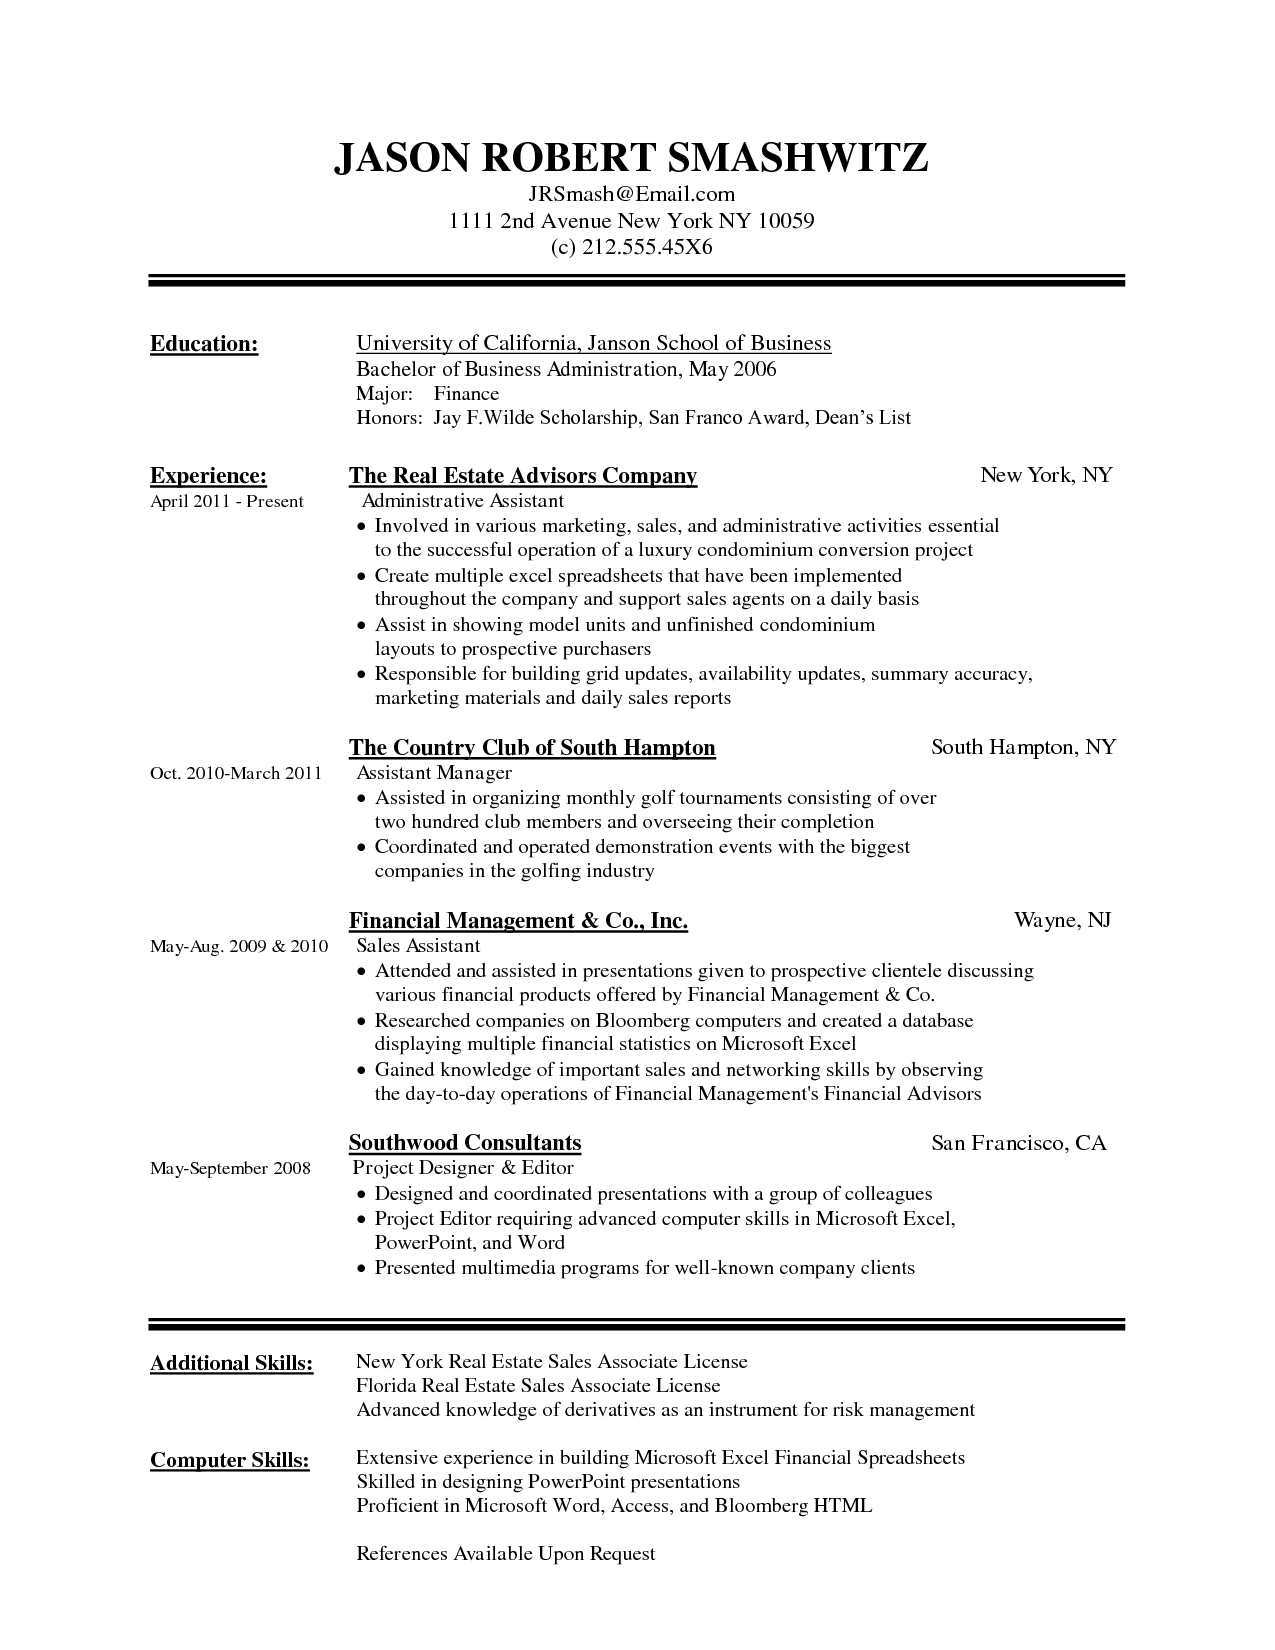 resume Resume Templates For Word resume templates word fotolip com rich image and wallpaper word